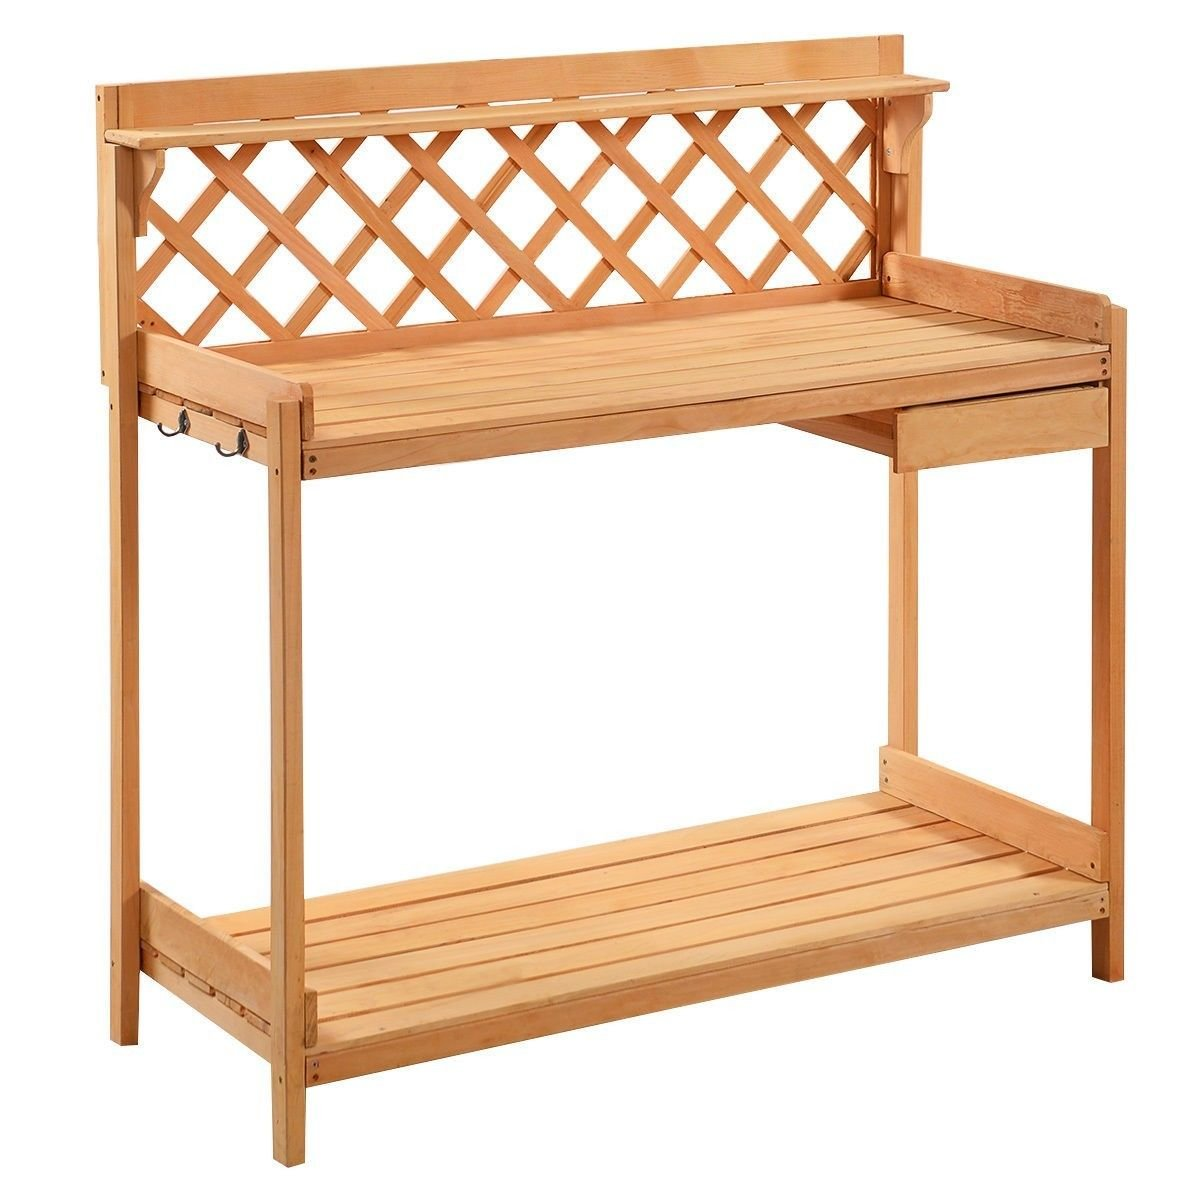 Outdoor Garden Potting Bench Work Bench Station Planting Solid Wood Construction ,product_by: patsbargainhut14 it#85252466758574